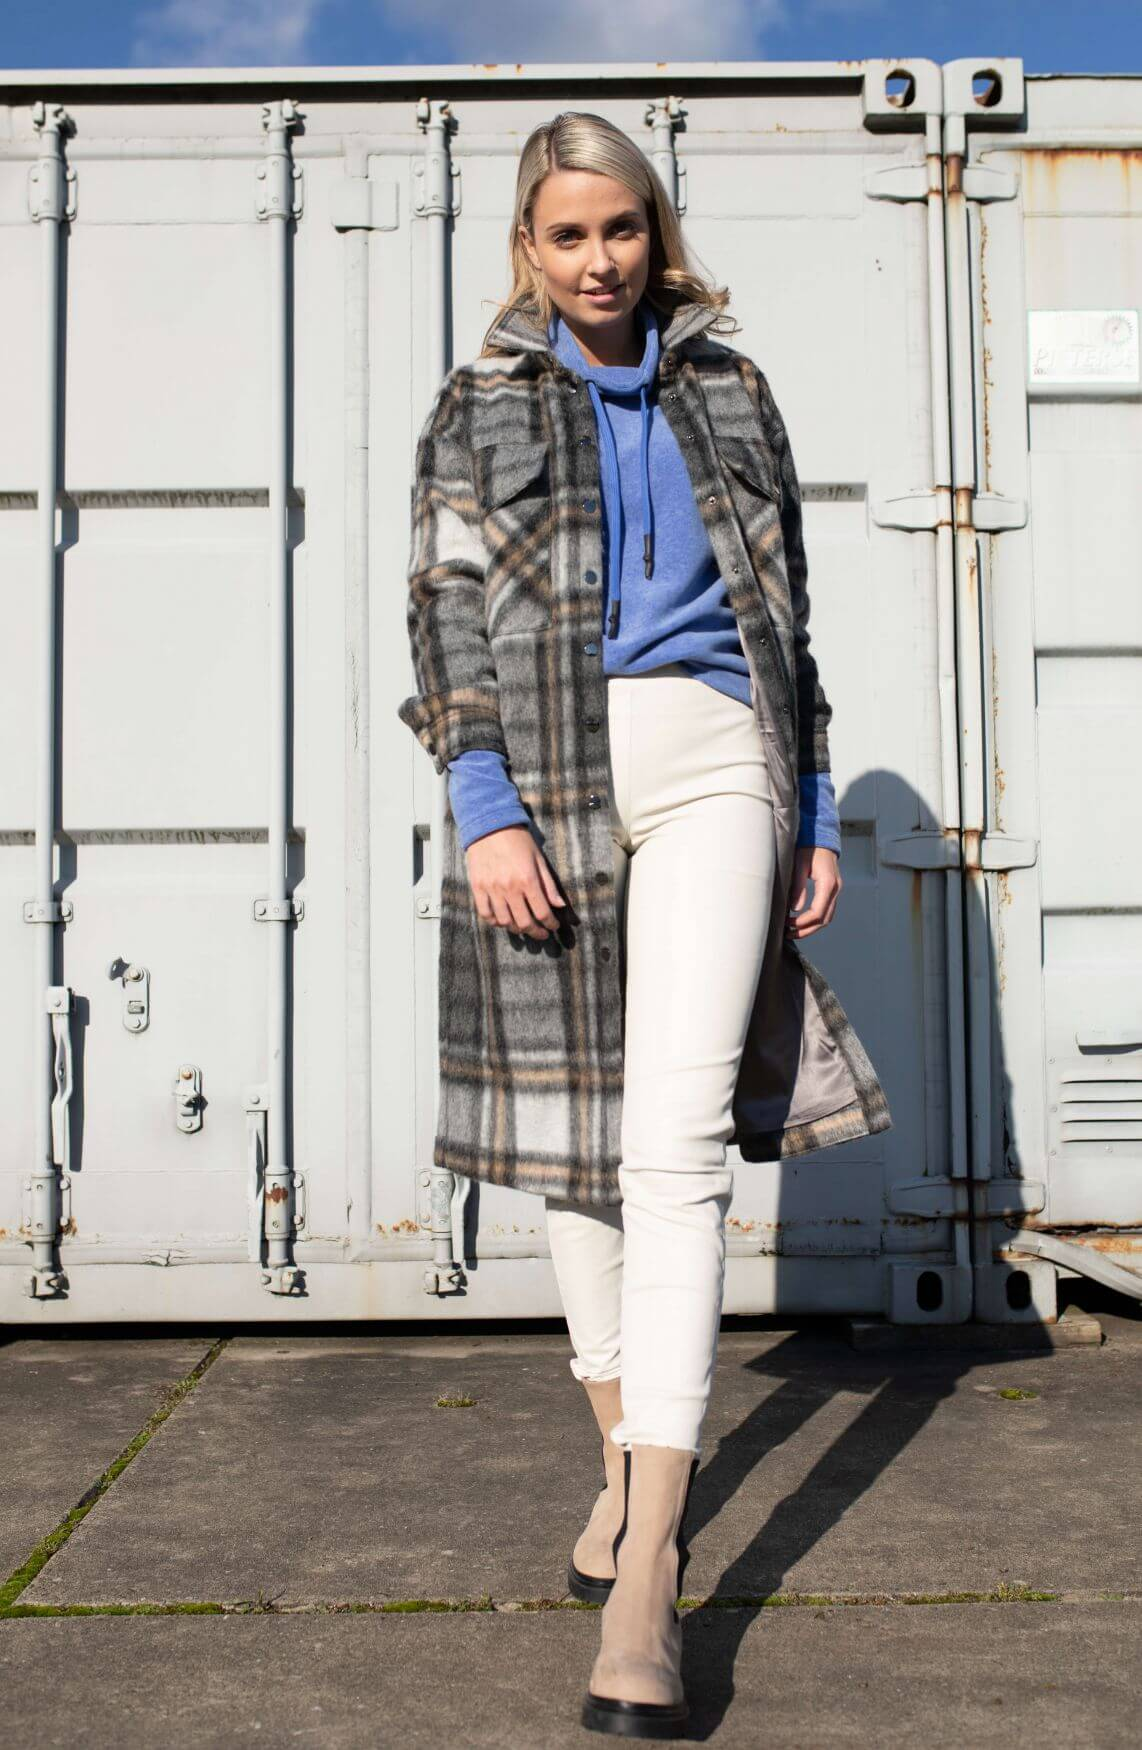 Dames streetlook - 276